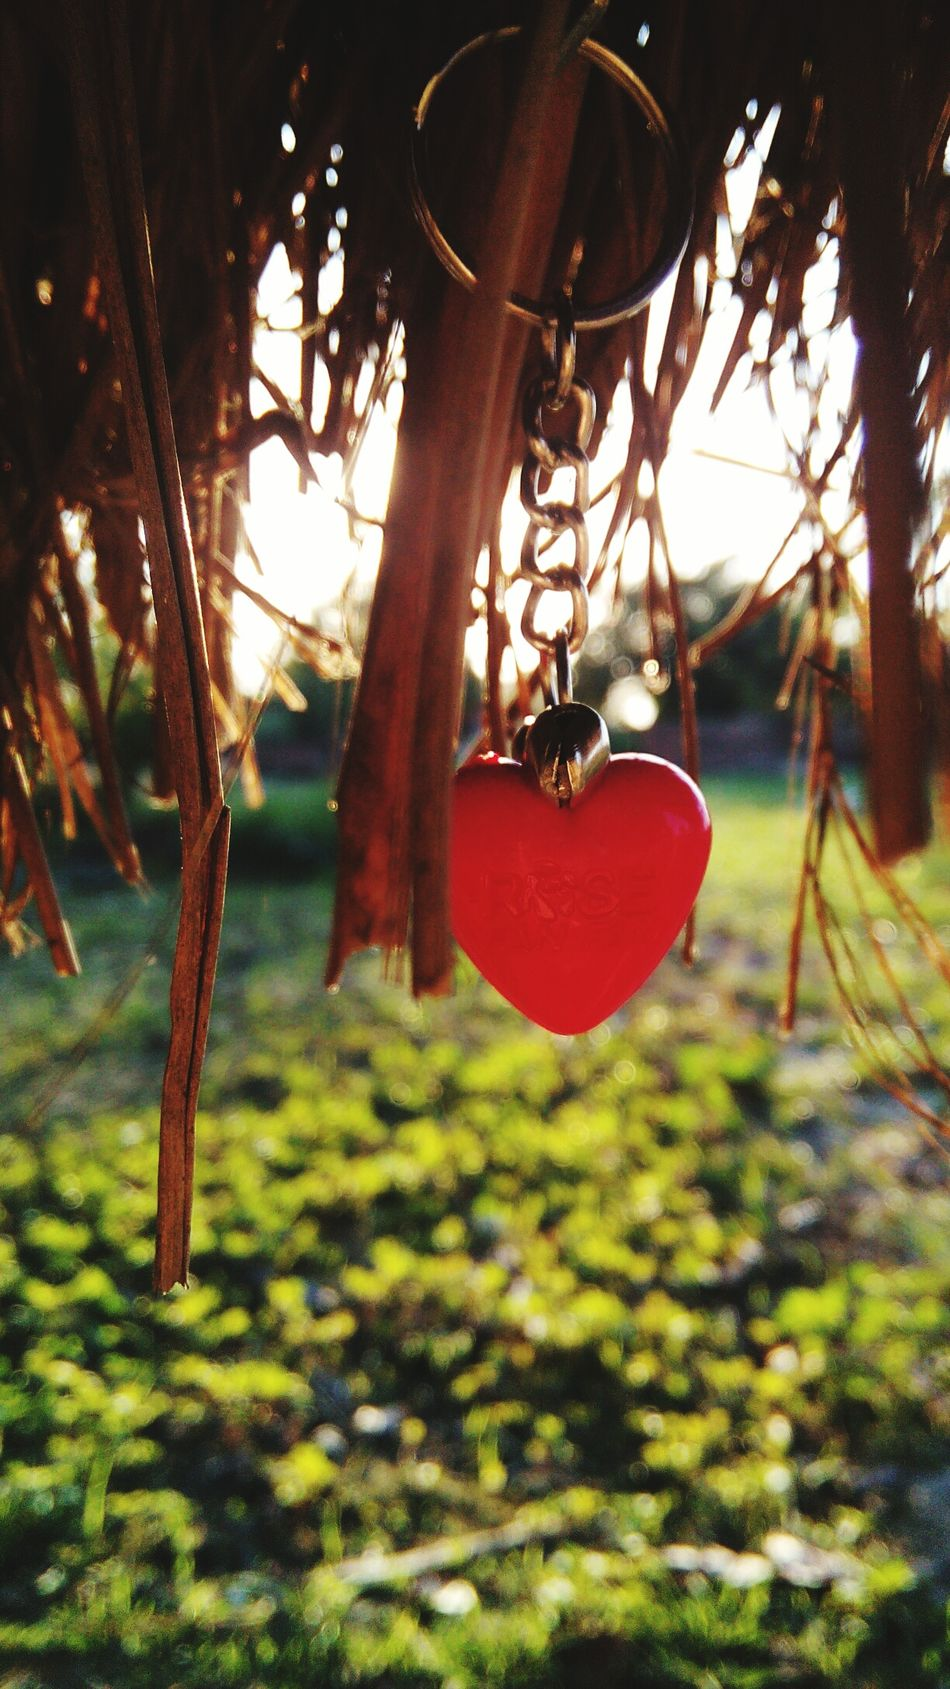 Love Nature Leaves Focus Heart Chain 43 Golden Moments Morning Morning Light Village Hometown Picofthemonth Brijesh Photography